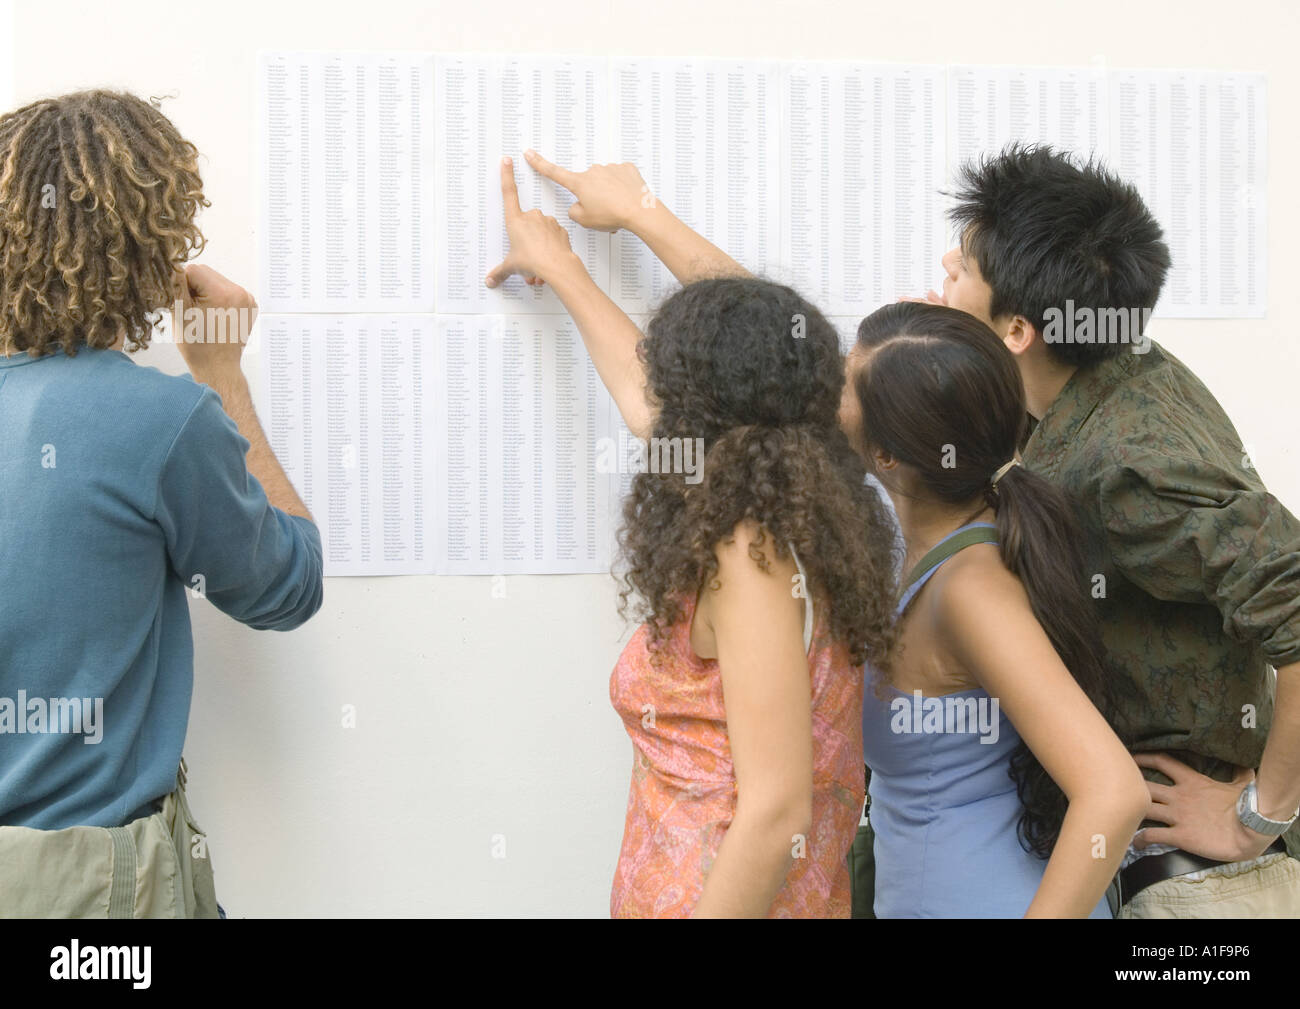 Students looking and pointing at results posted on wall, rear view - Stock Image